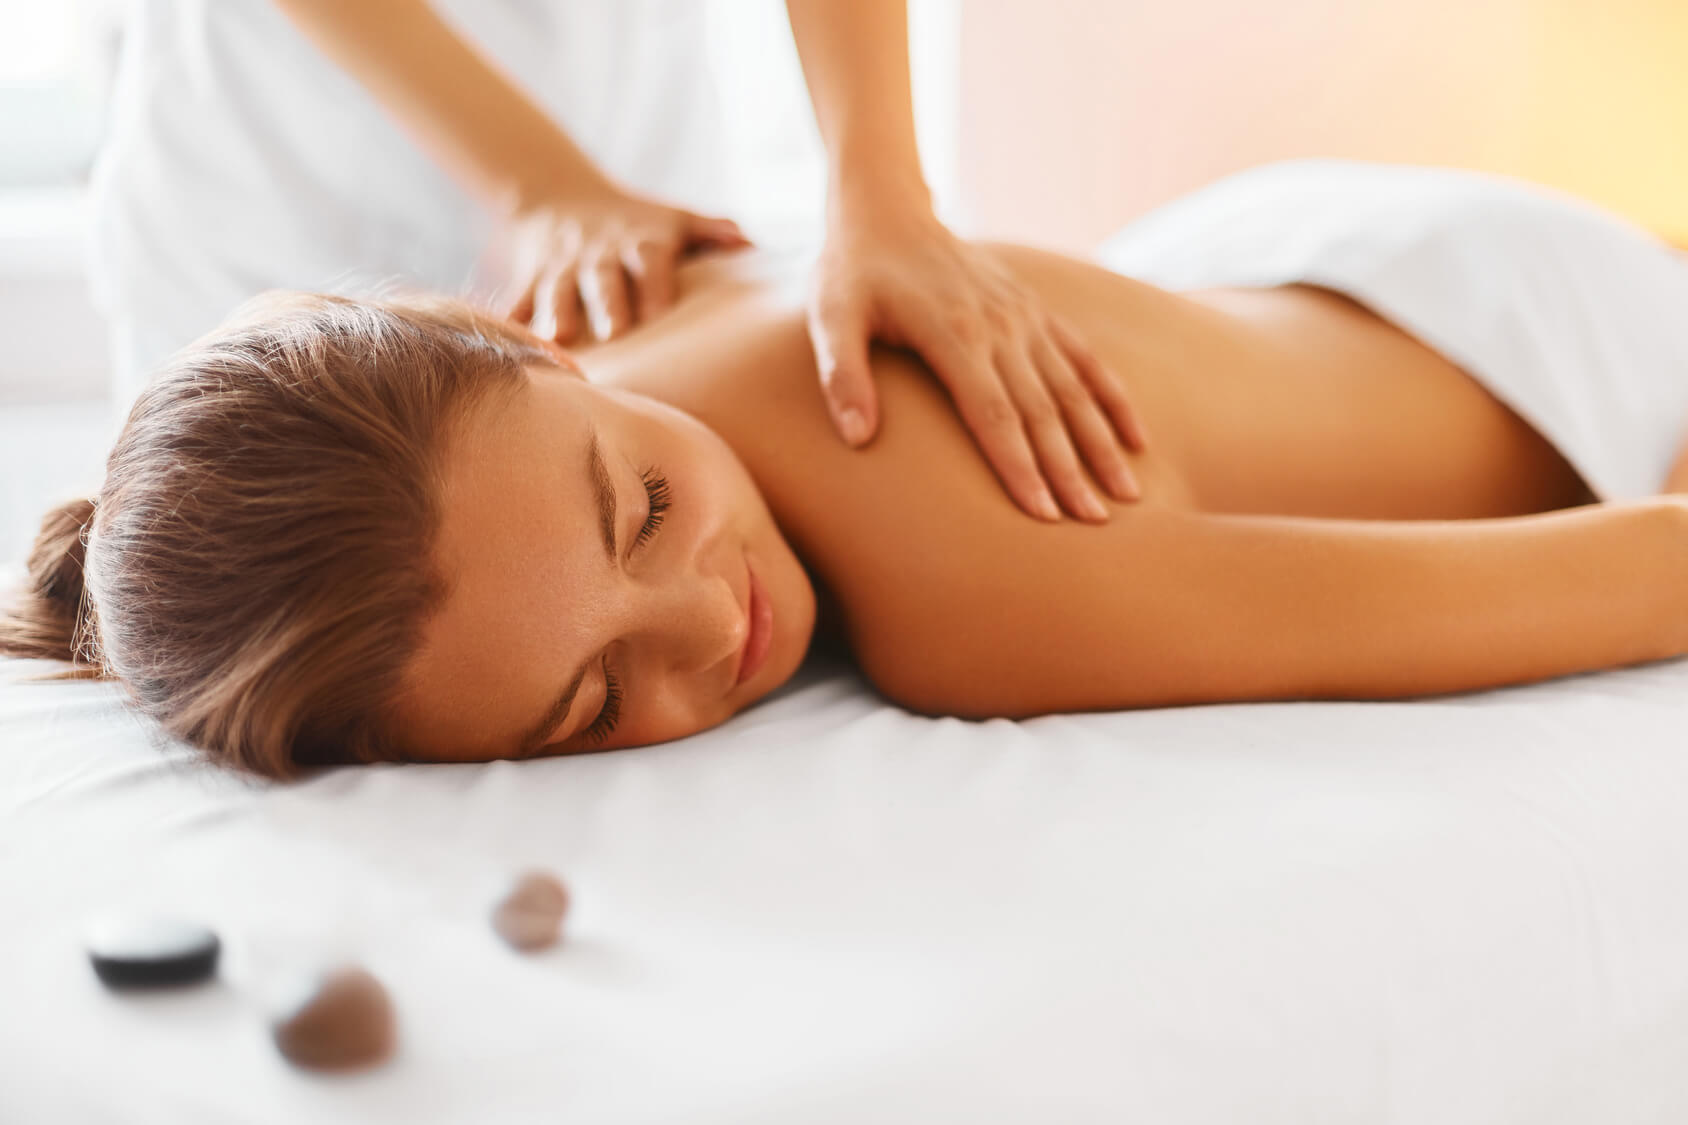 Services including In-Home Massage, facials and body wraps